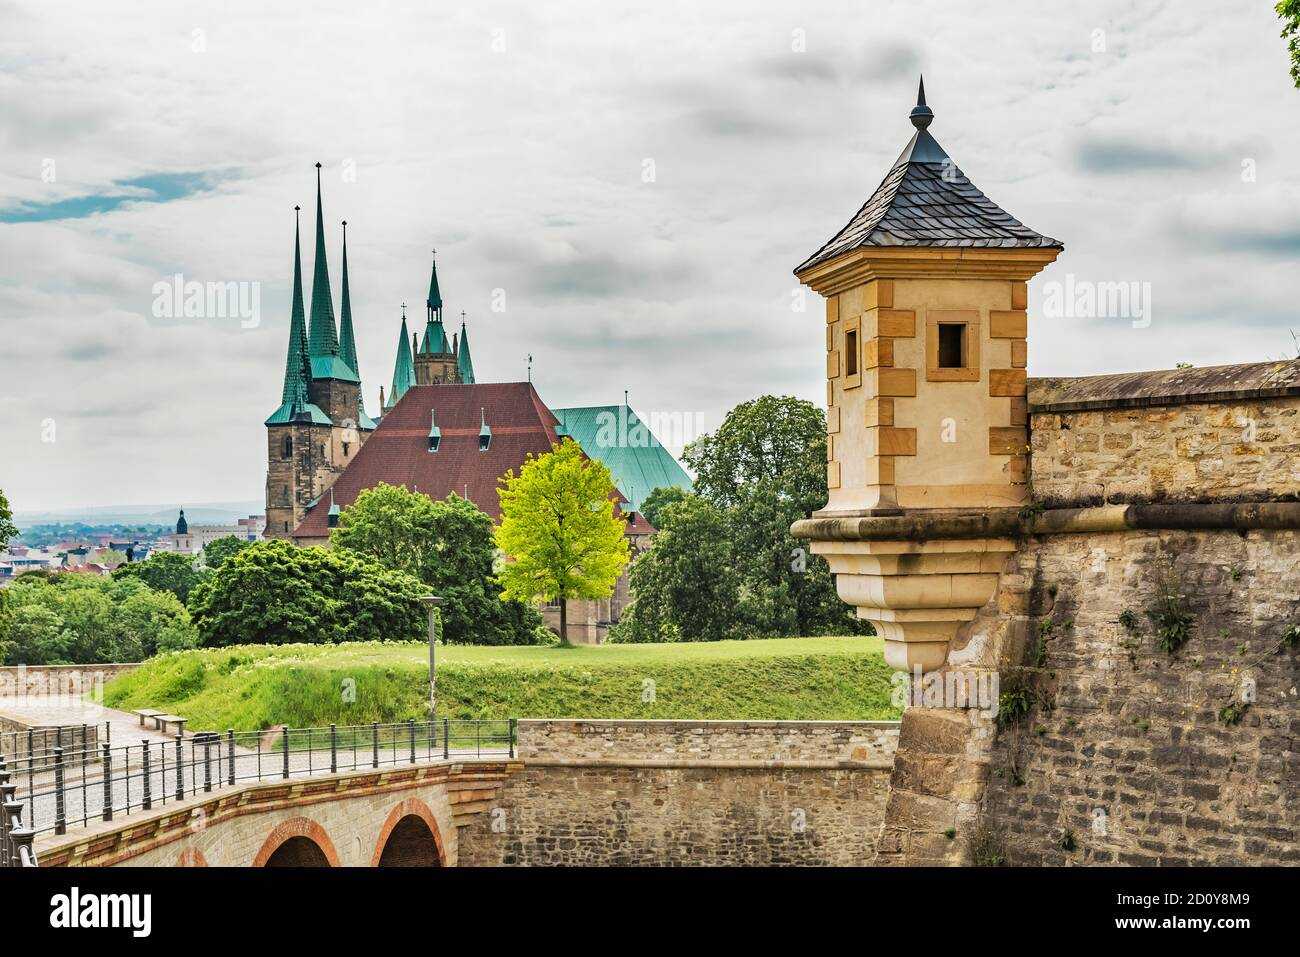 View from the citadel Petersberg to the Cathedral Hill with the Erfurt Cathedral and the Severi Church Erfurt, capital of Thuringia, Germany, Europe Stock Photo